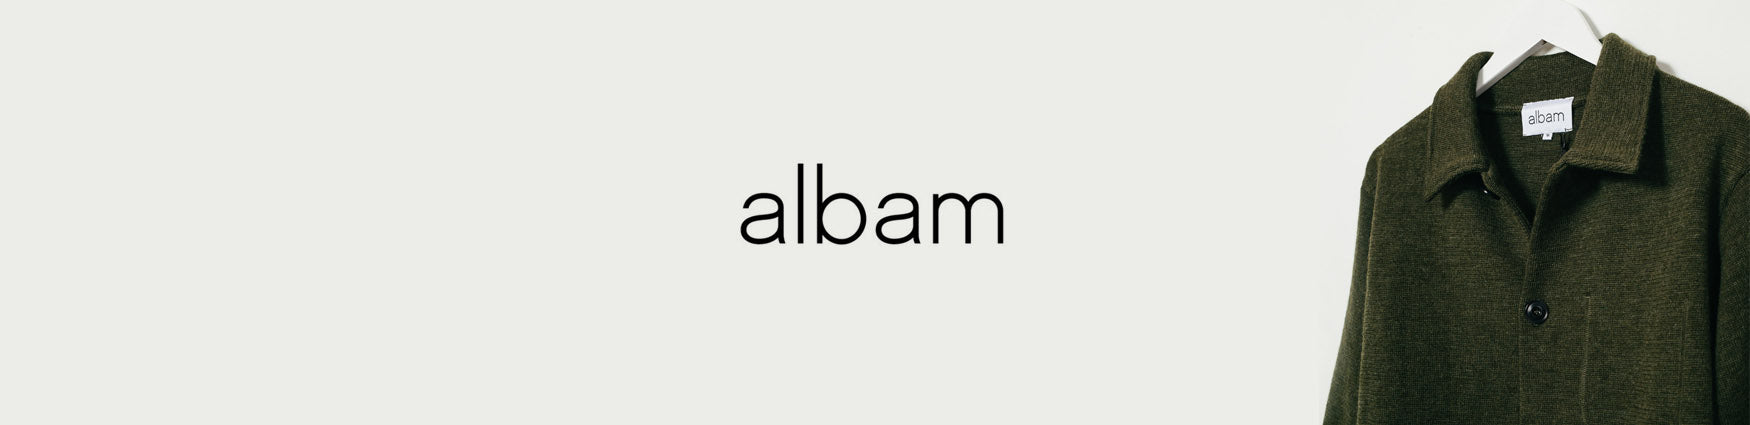 Shop Albam Clothing from Roo's Beach UK